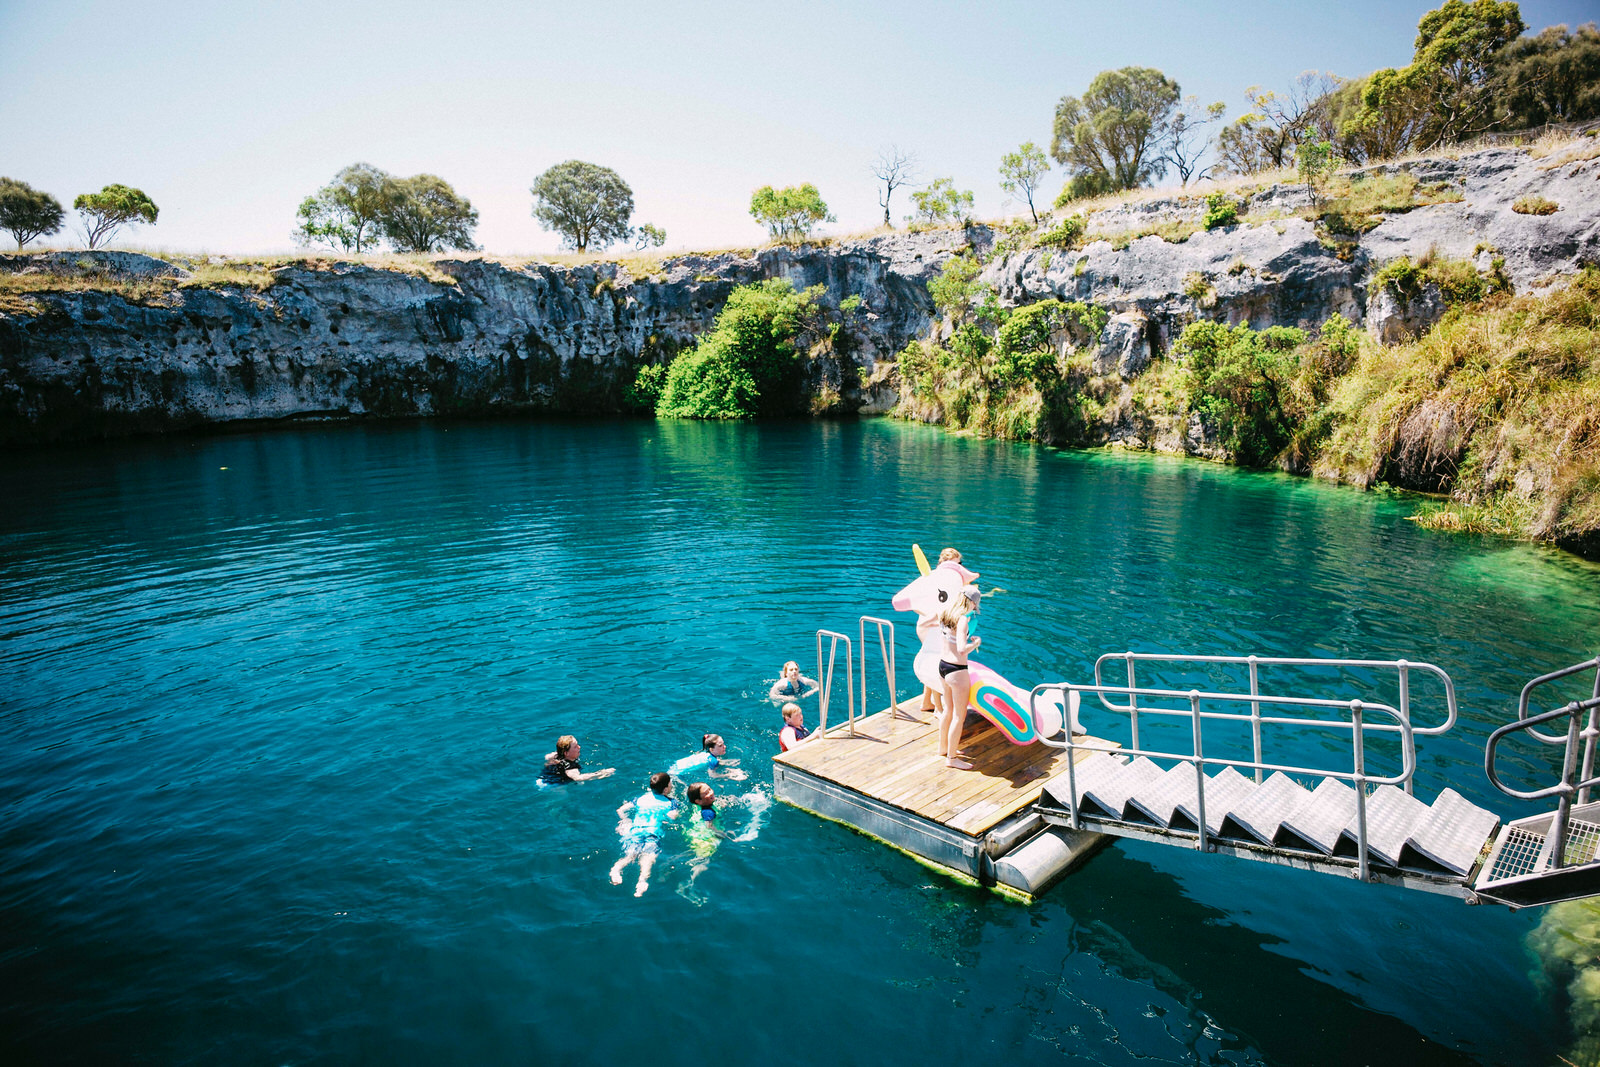 Image via Discover Mount Gambier